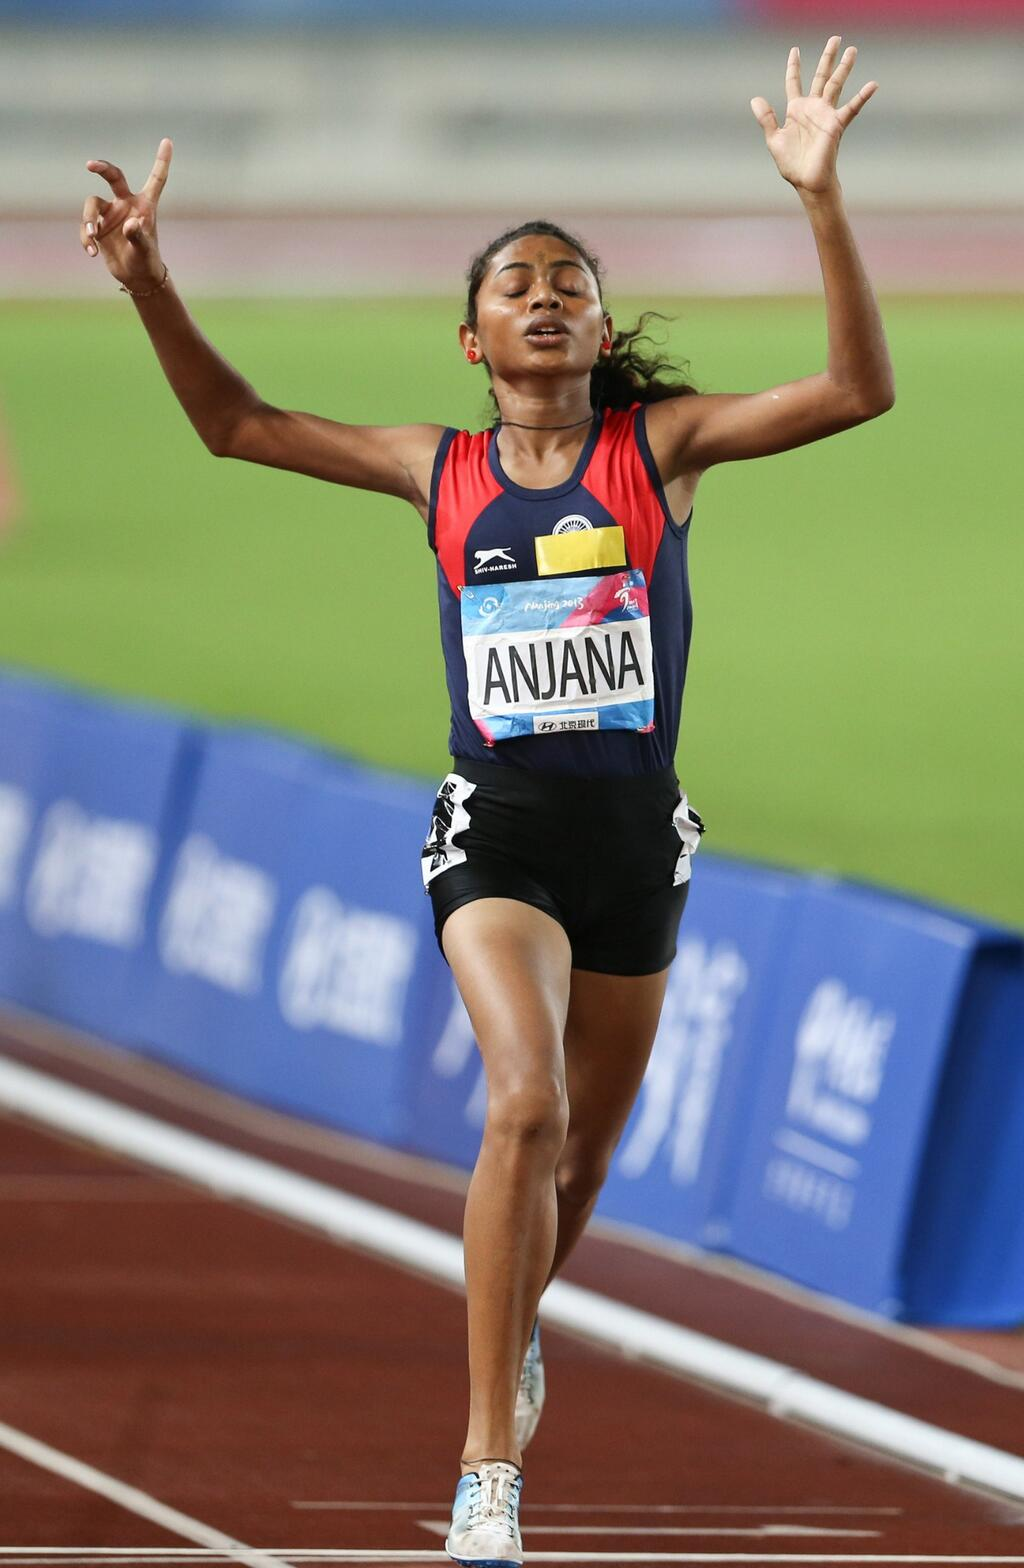 Anjana Dhavalu Thamake won Gold Medal at Asian Youth Games